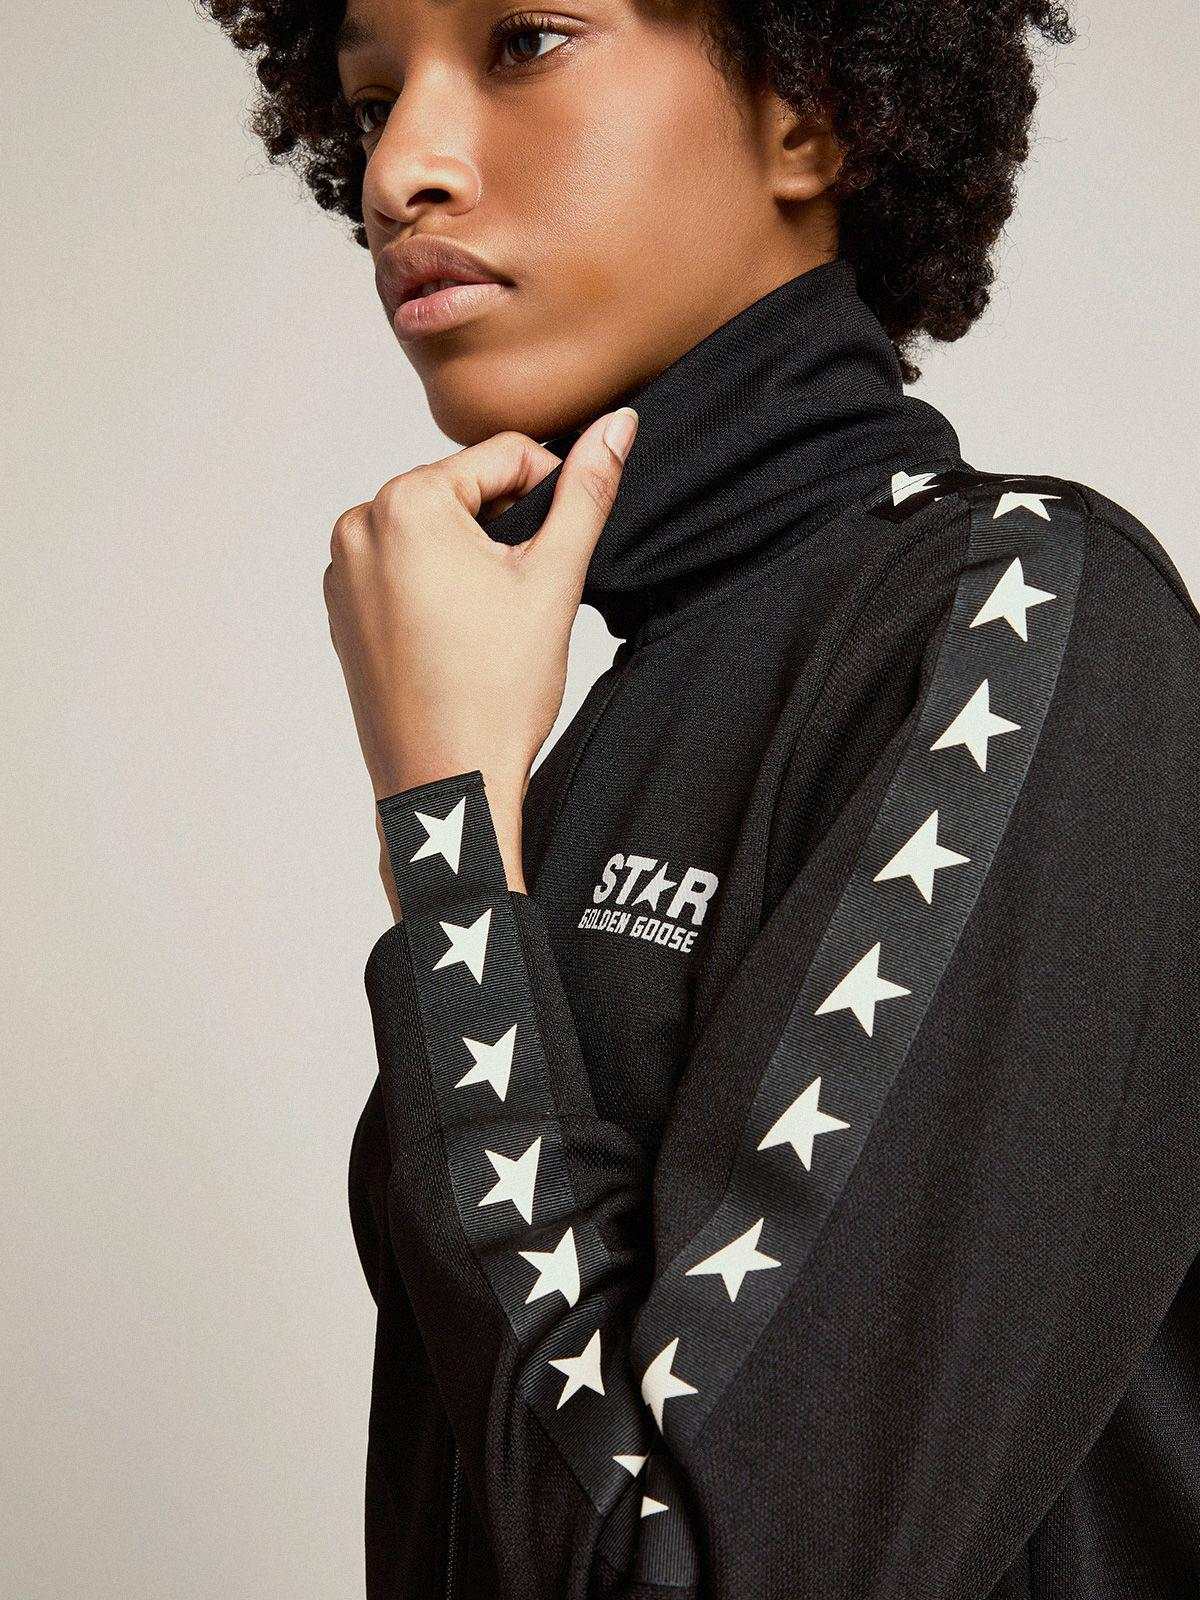 Black Denise Star Collection zipped sweatshirt with contrasting white stars